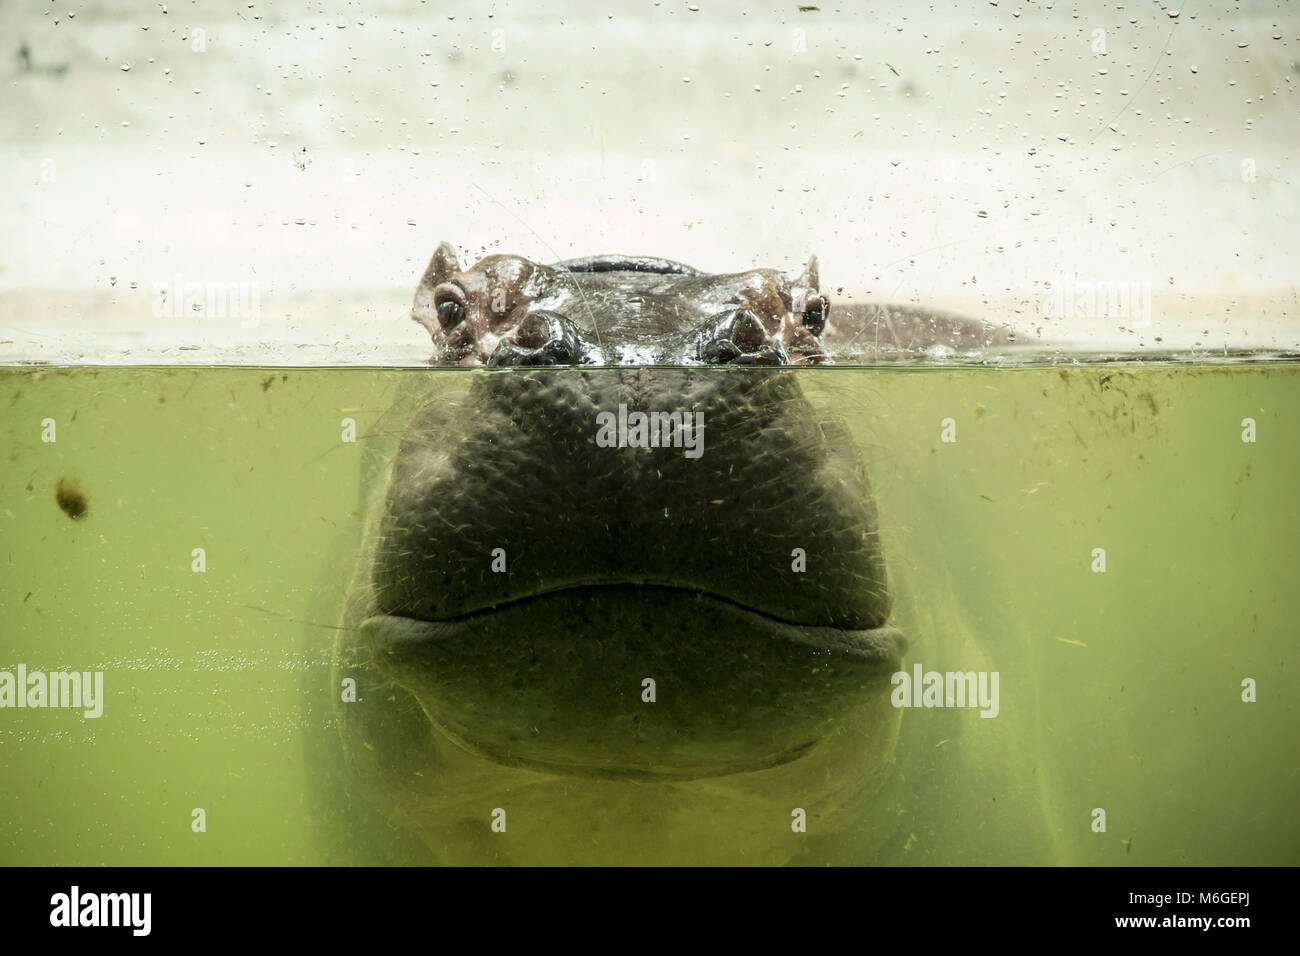 Share on below Hippopotamus completely bathed in the river on a hot sunny summer day. Nose and eyes popped out of - Stock Image